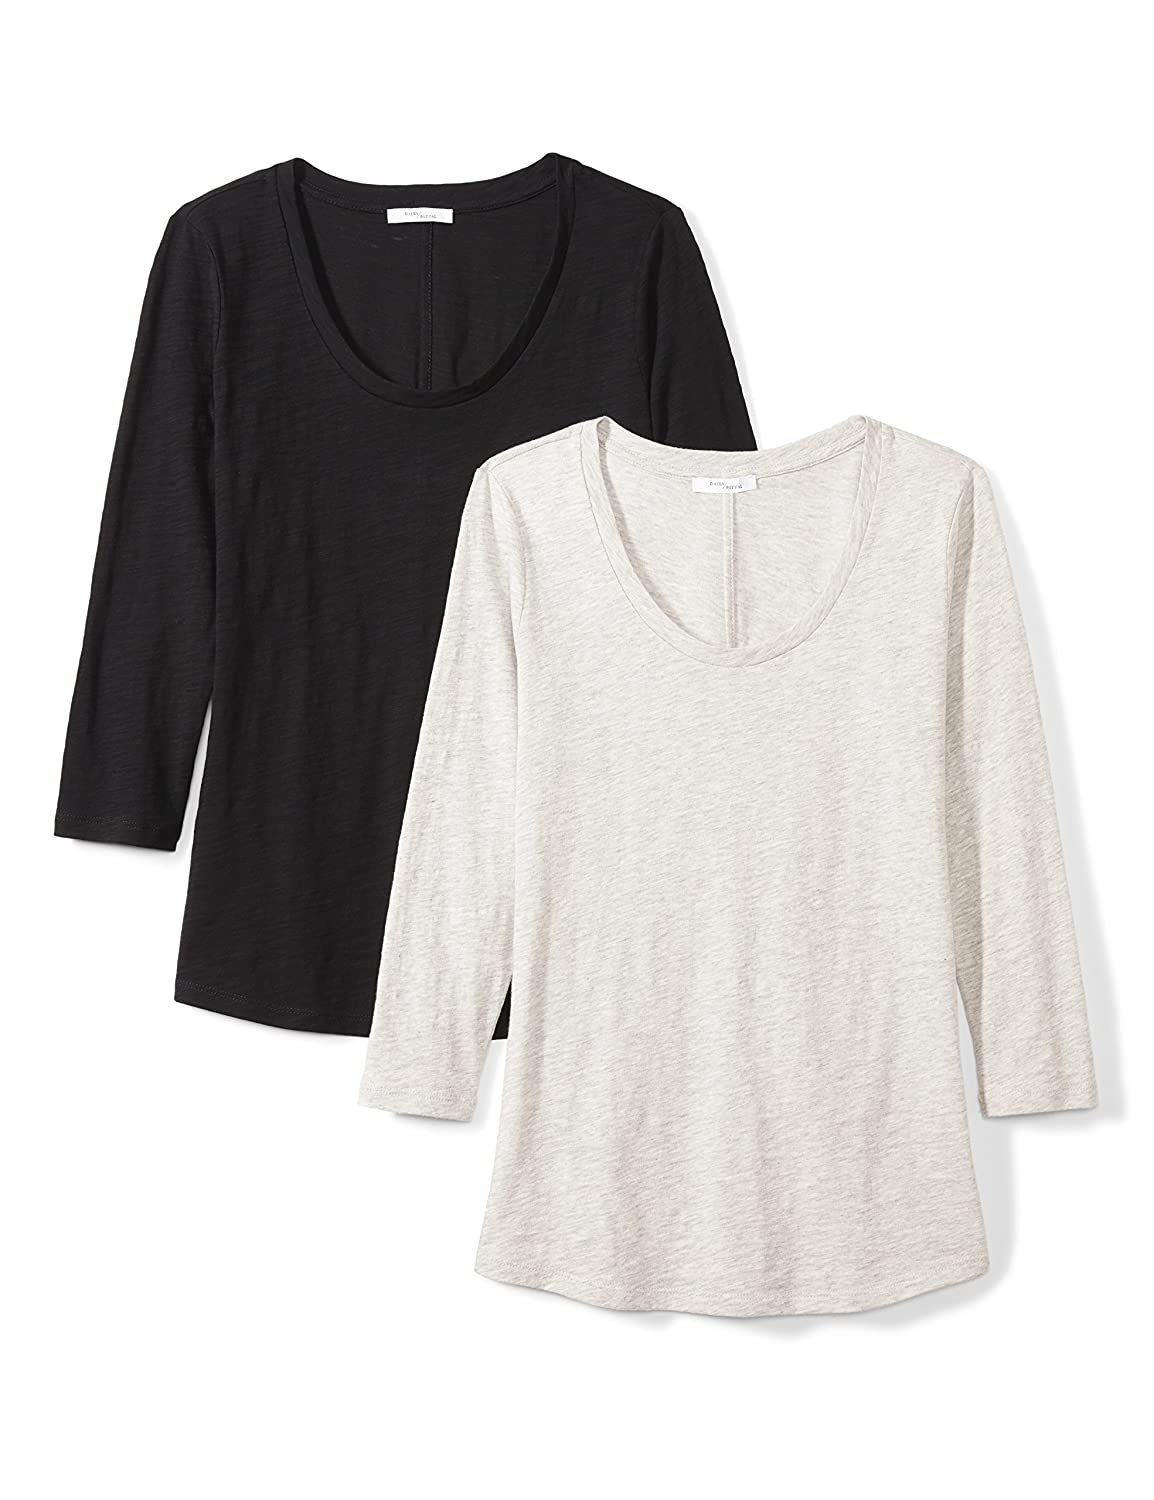 Daily Ritual Womens Lived-in Cotton Slub 3//4-Sleeve Scoop Neck T-Shirt Brand